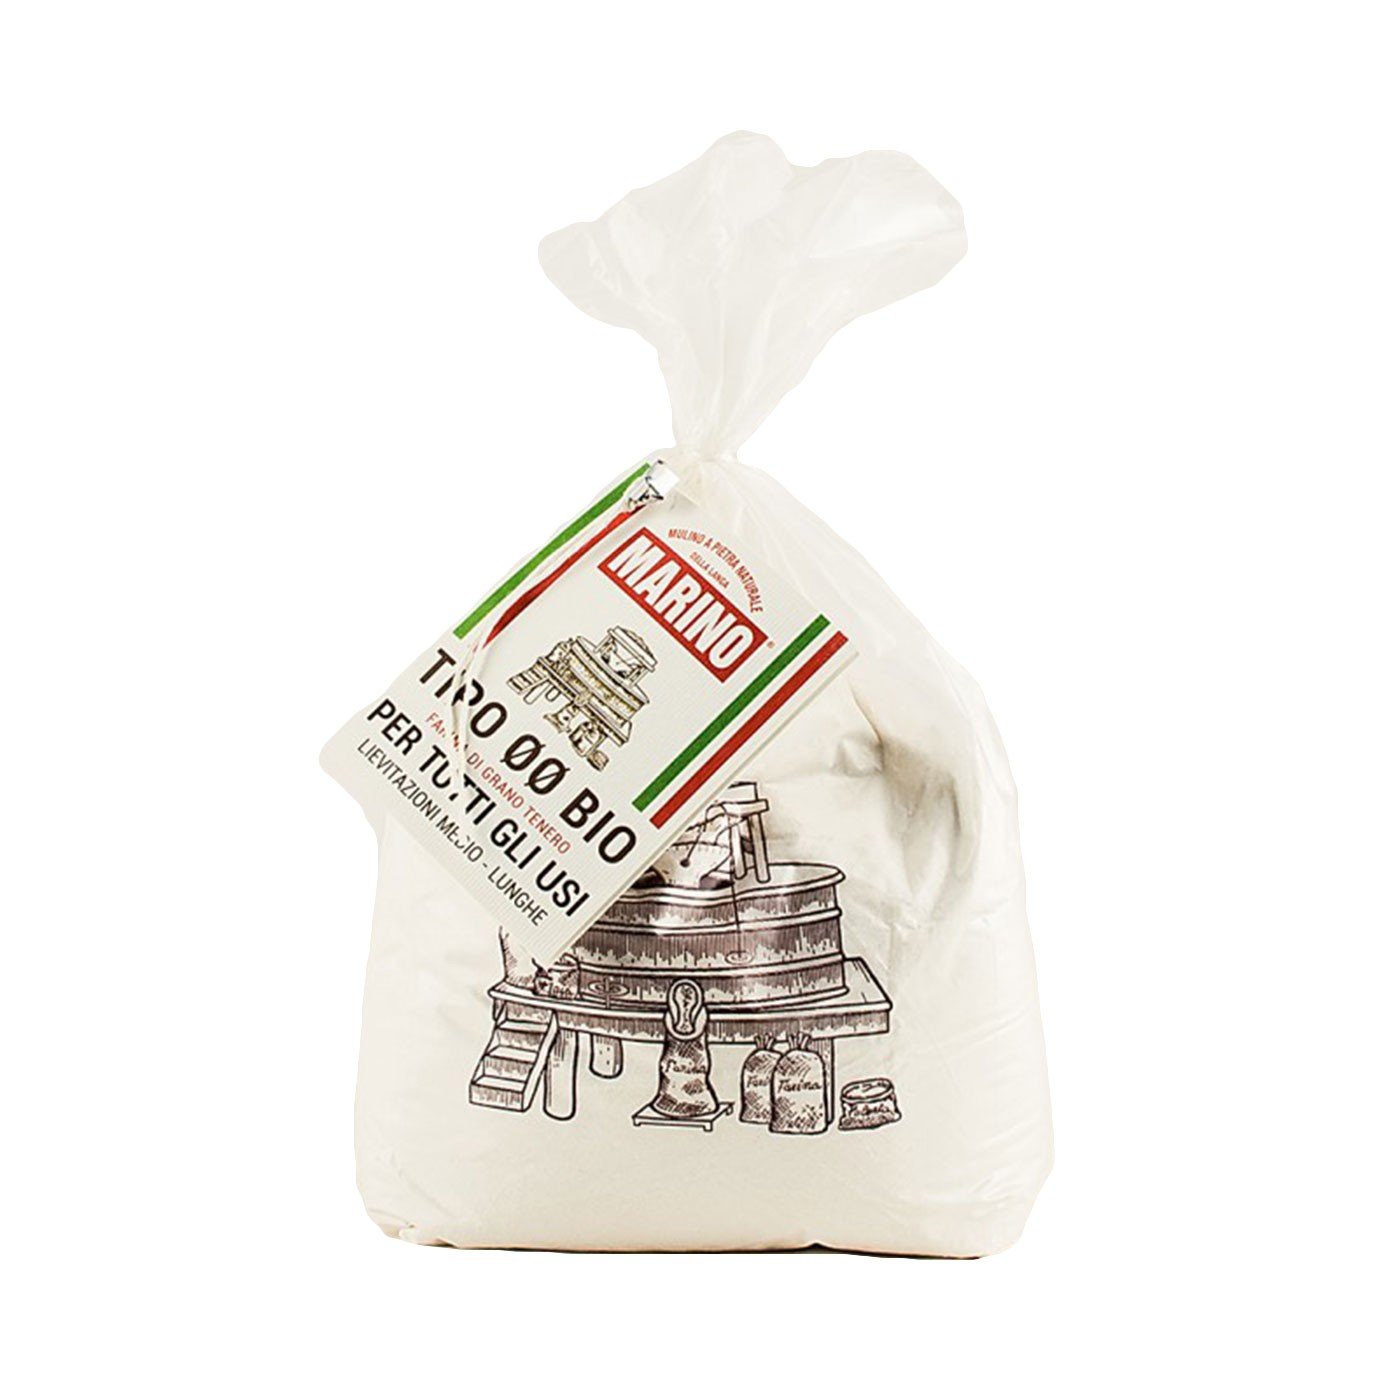 Organic Type 00 Wheat Flour 35.3 oz